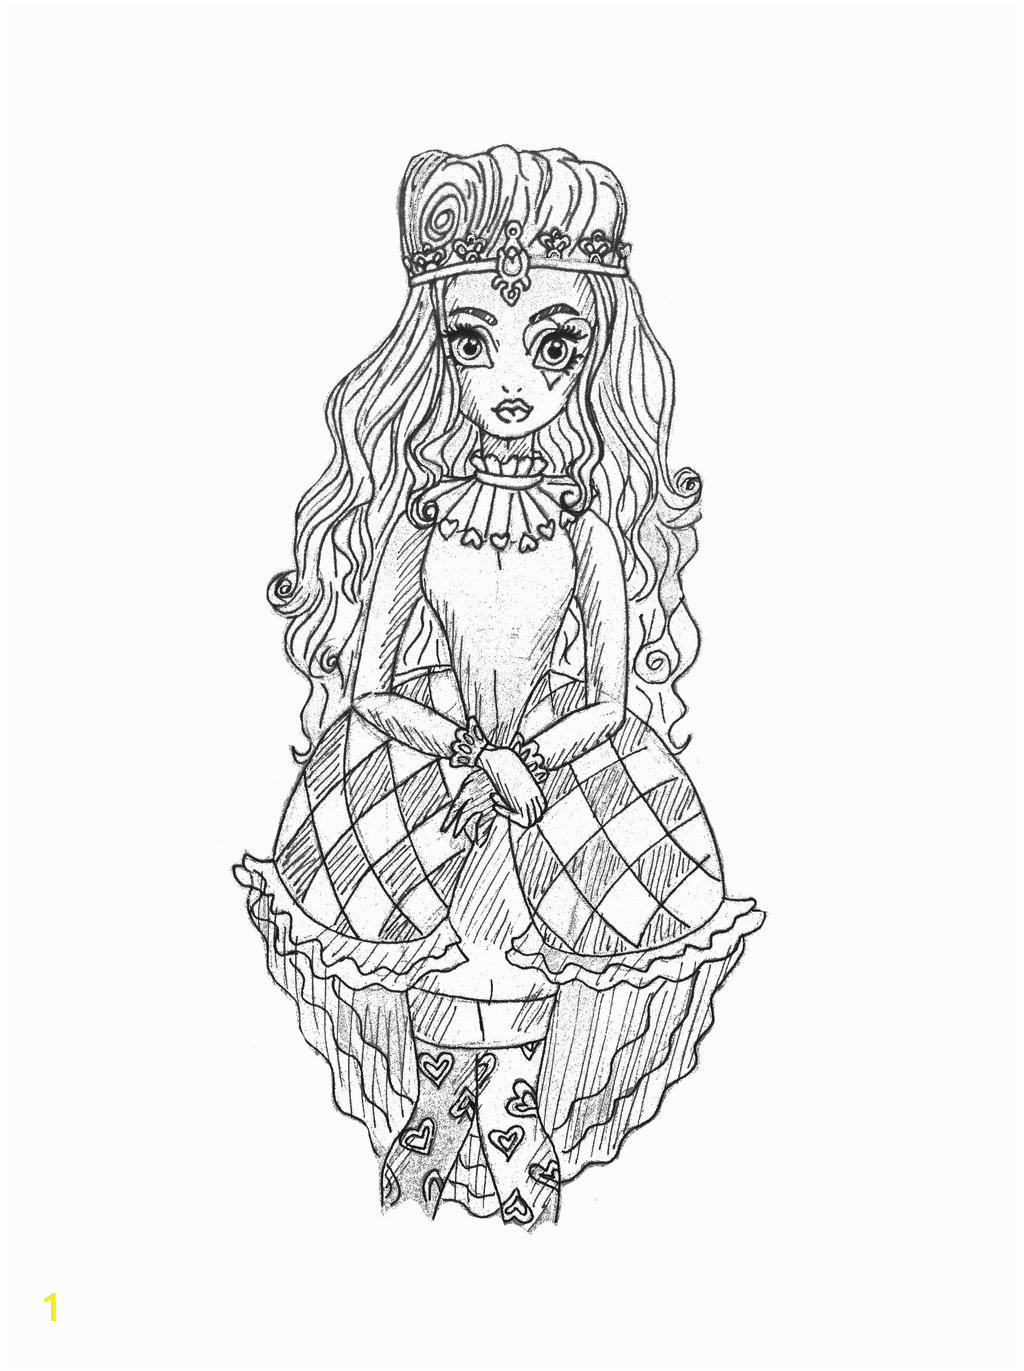 Young Lizzie Hearts sketch